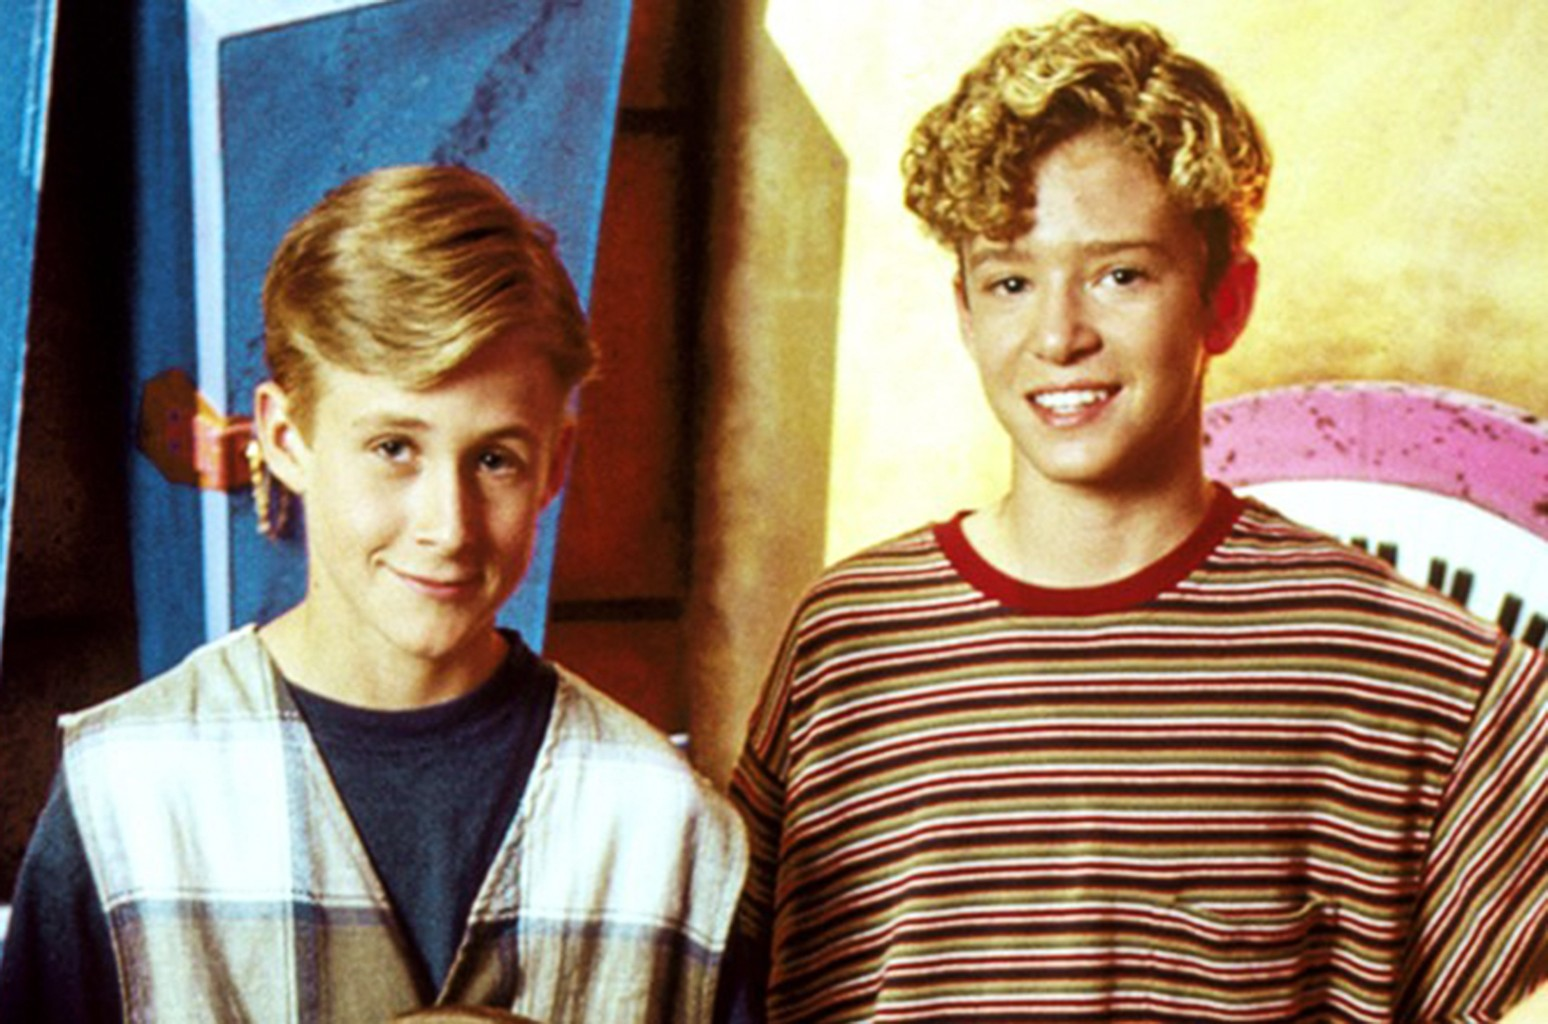 Ryan Gosling and Justin Timberlake in a promo for The All New Mickey Mouse Club.